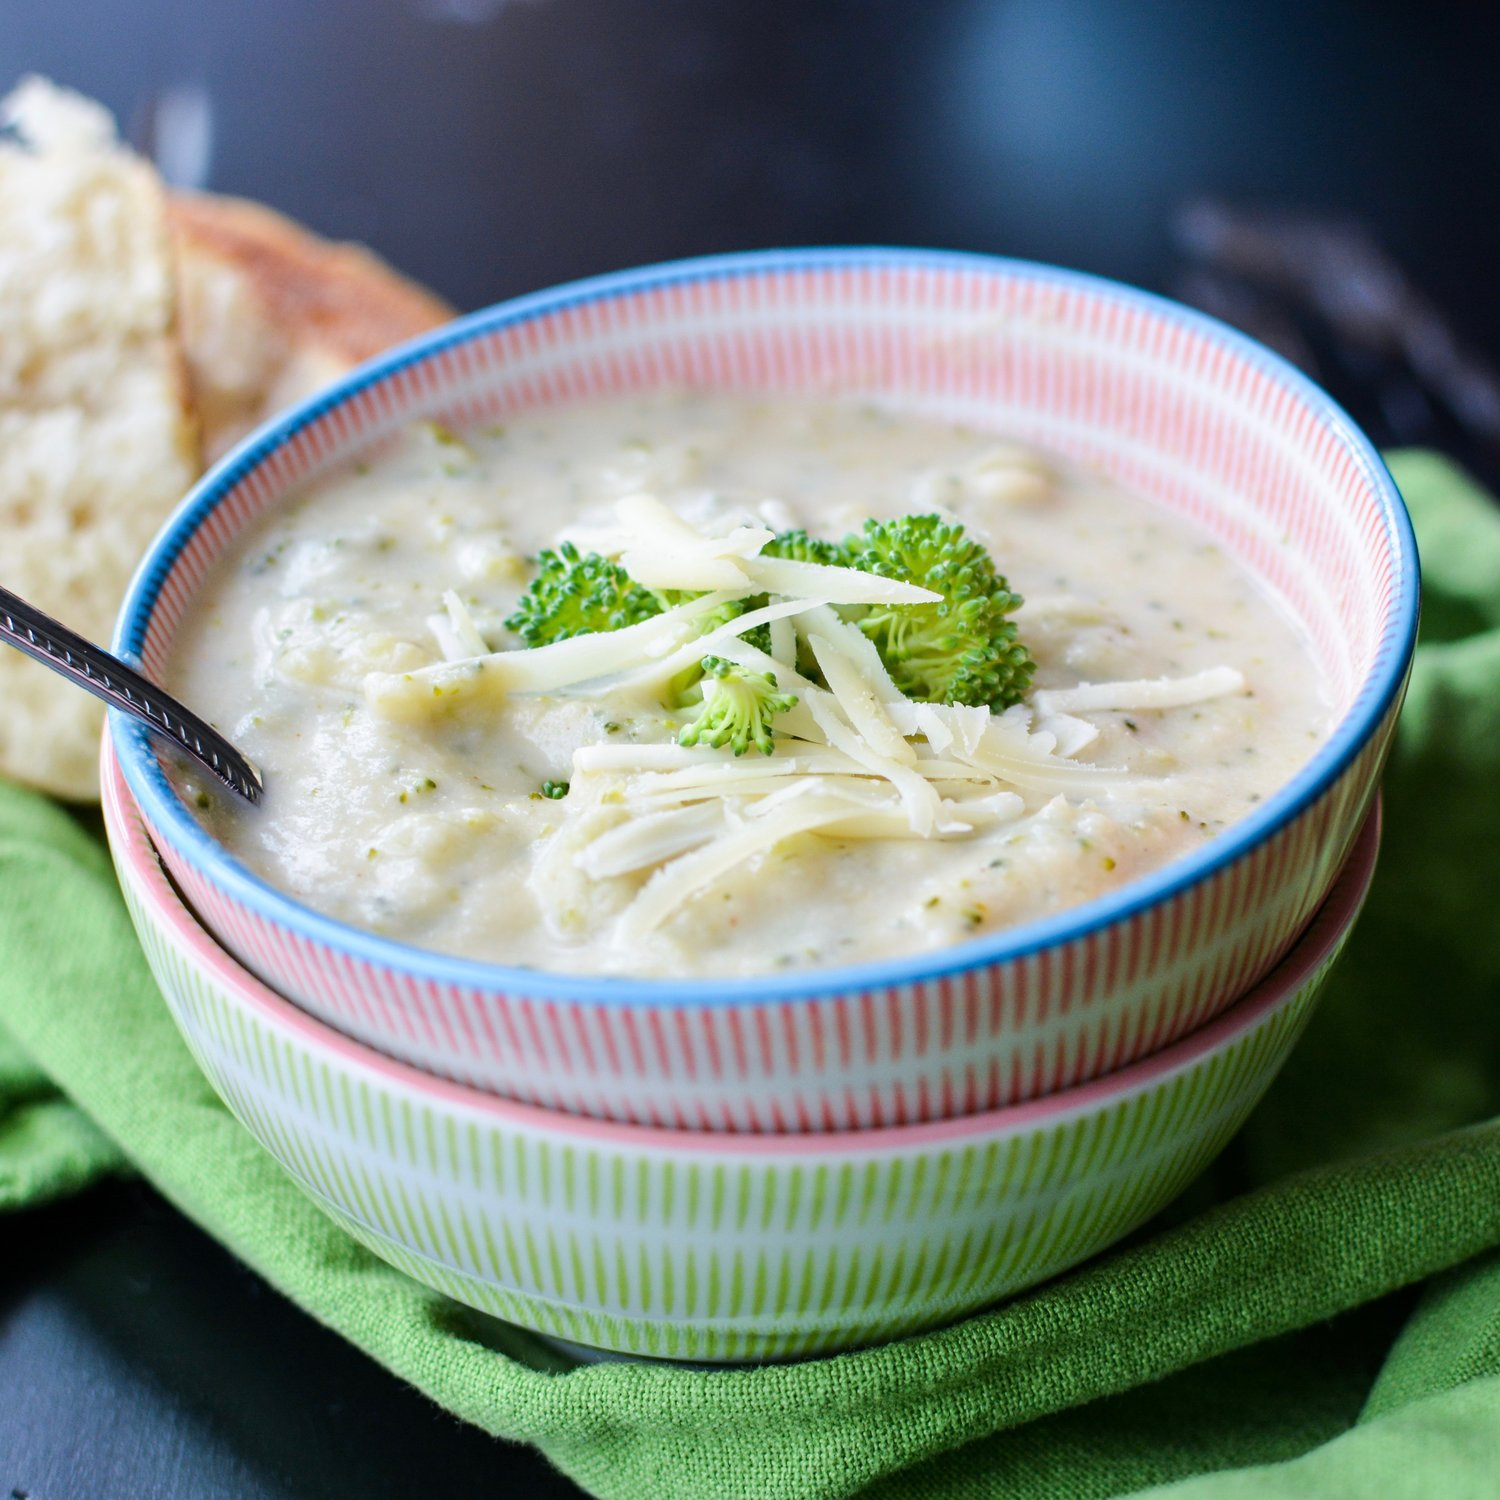 Hidden Vegetable Broccoli Cheddar Soup